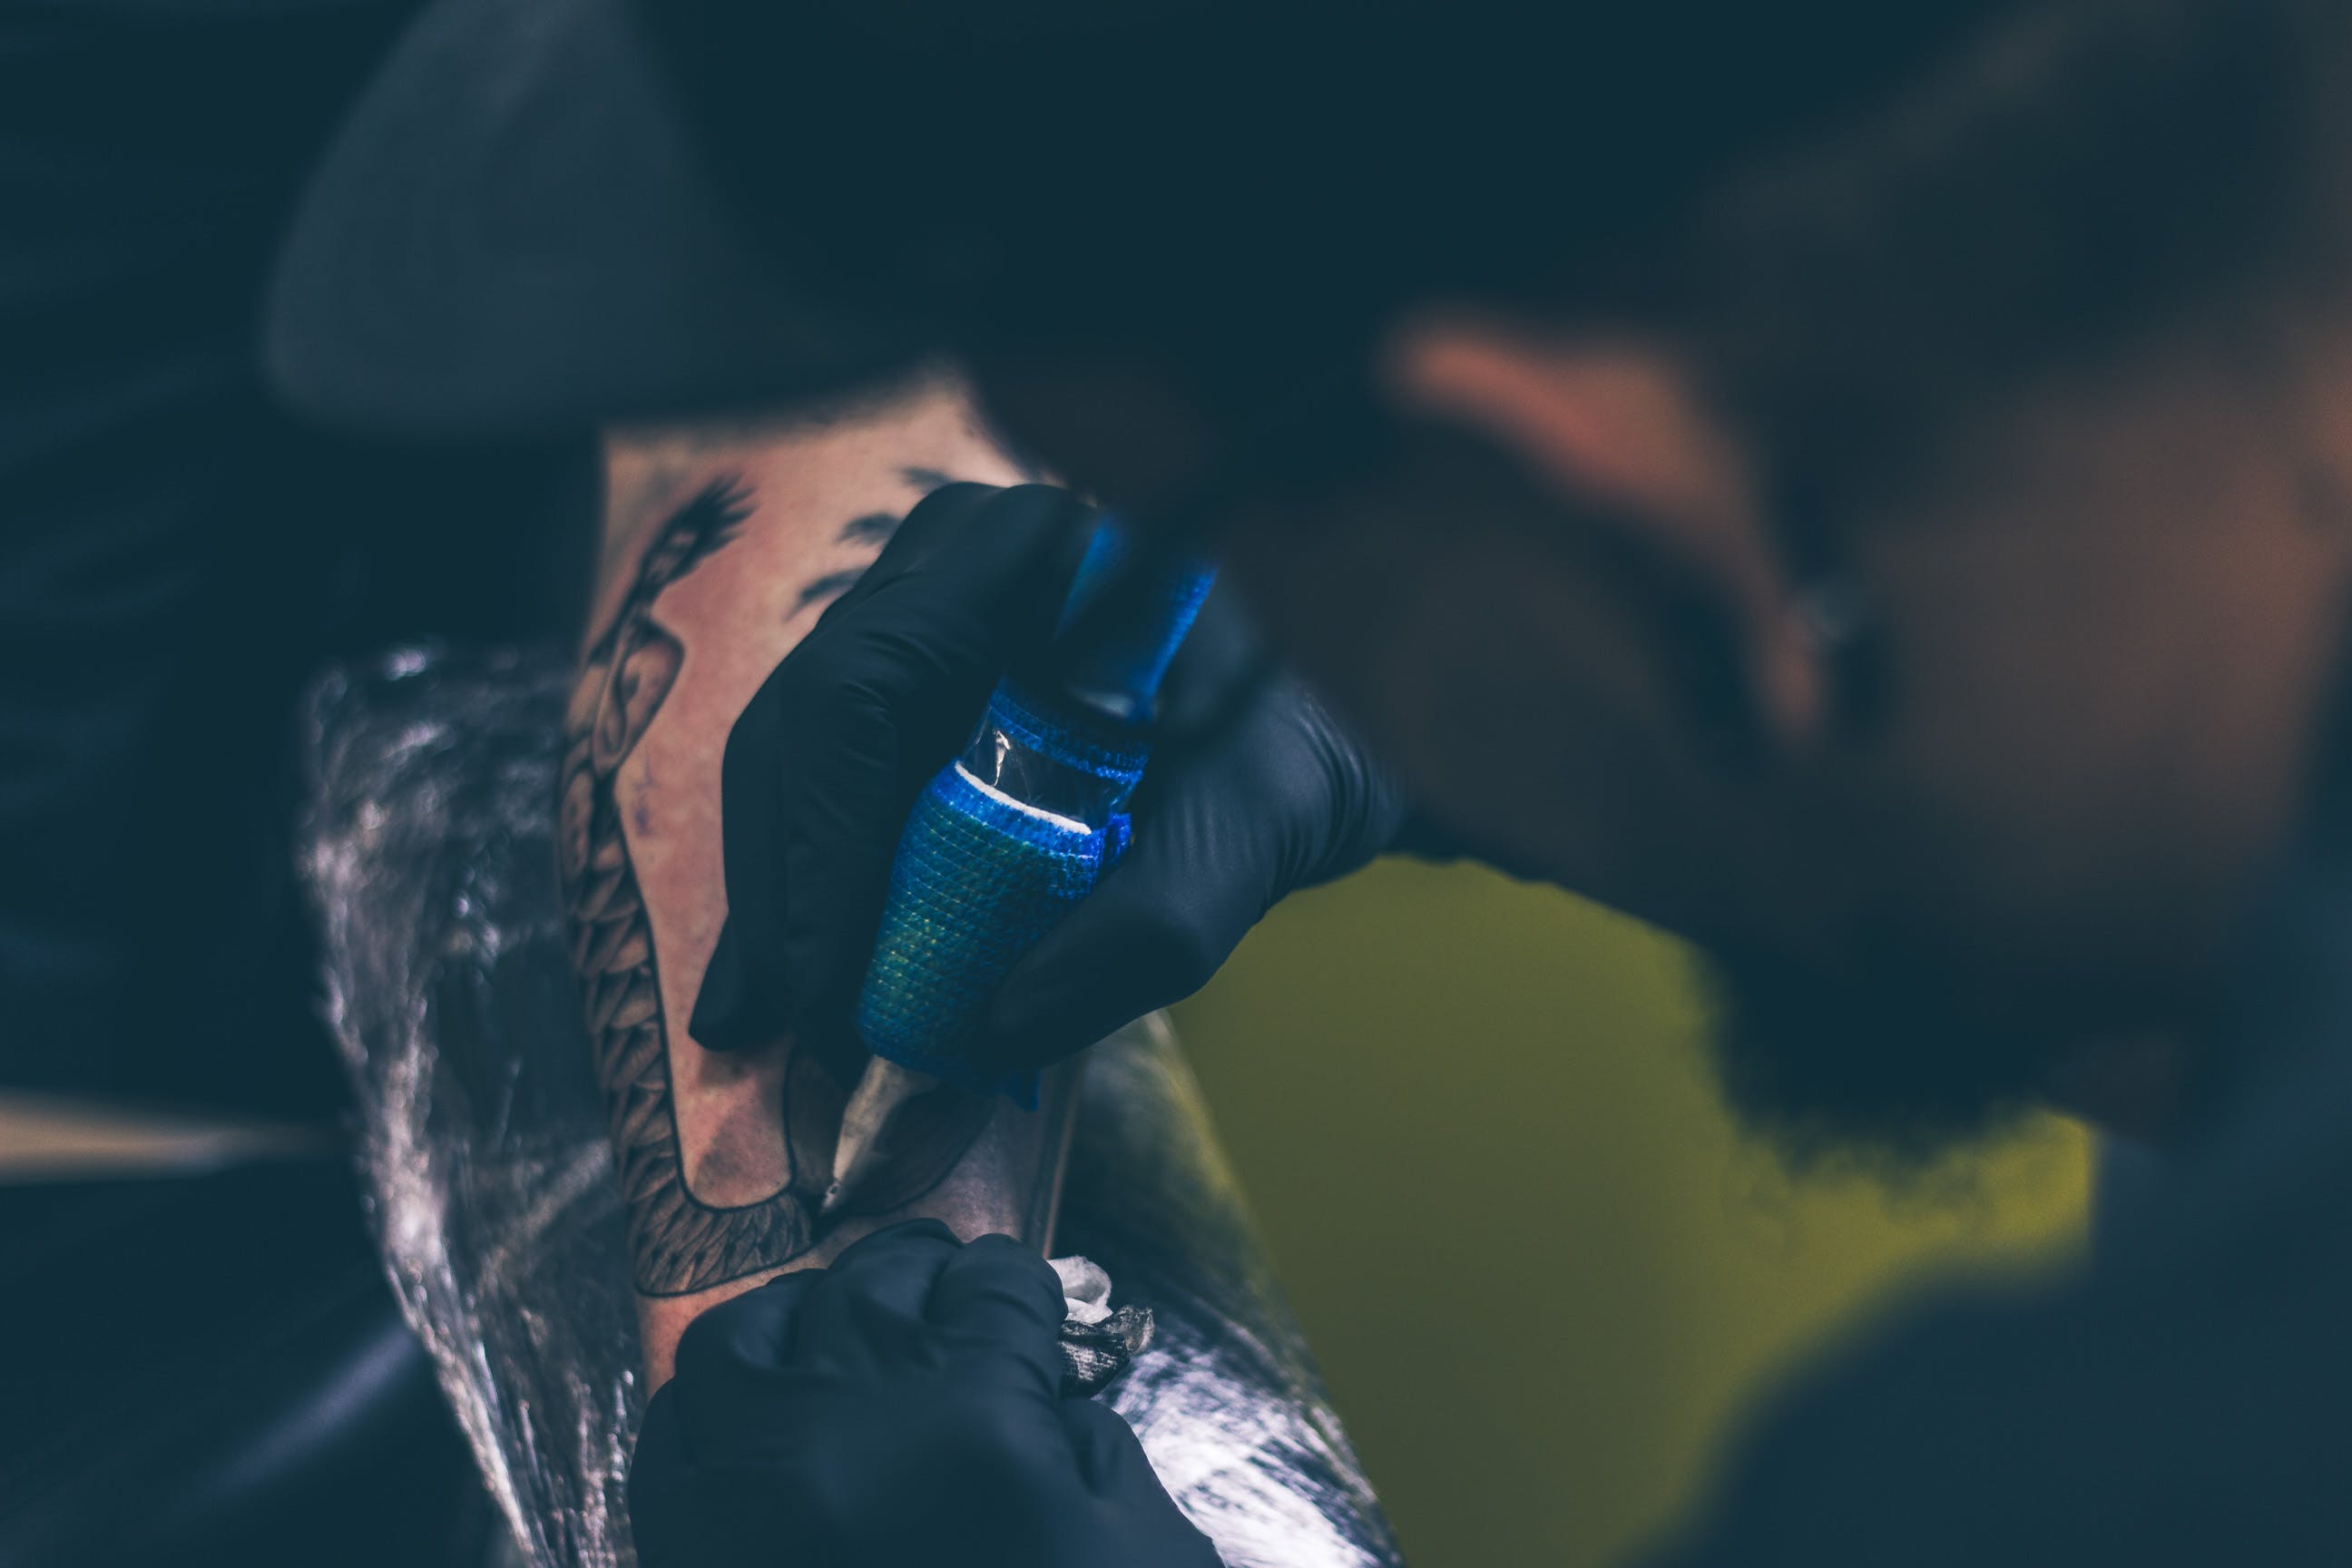 Man Tattooing Person on Arm